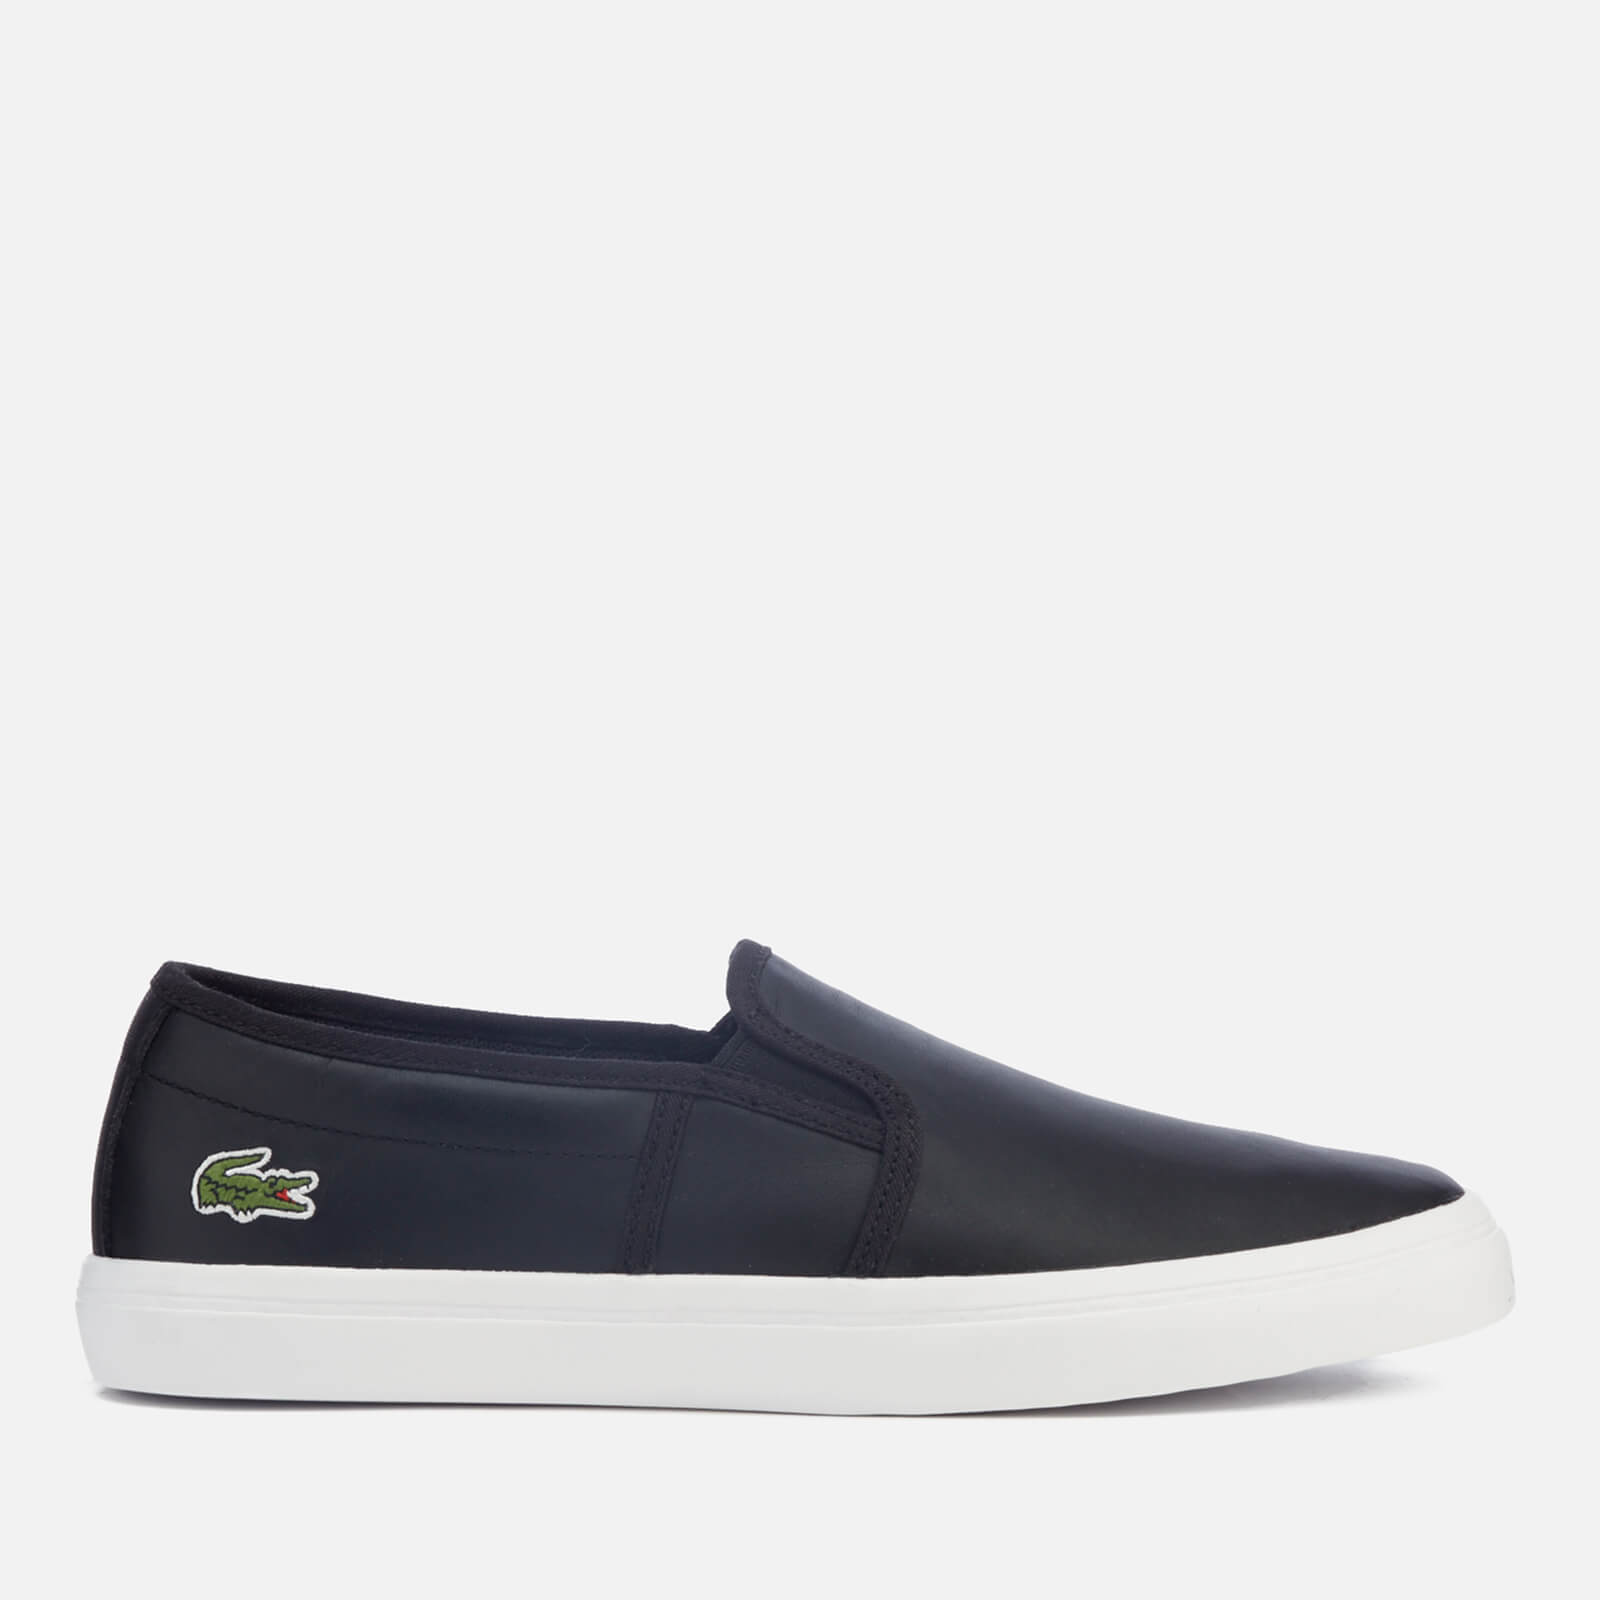 7e1ea602d Lacoste Women s Gazon Bl 1 Leather Slip-On Trainers - Black - Free UK  Delivery over £50